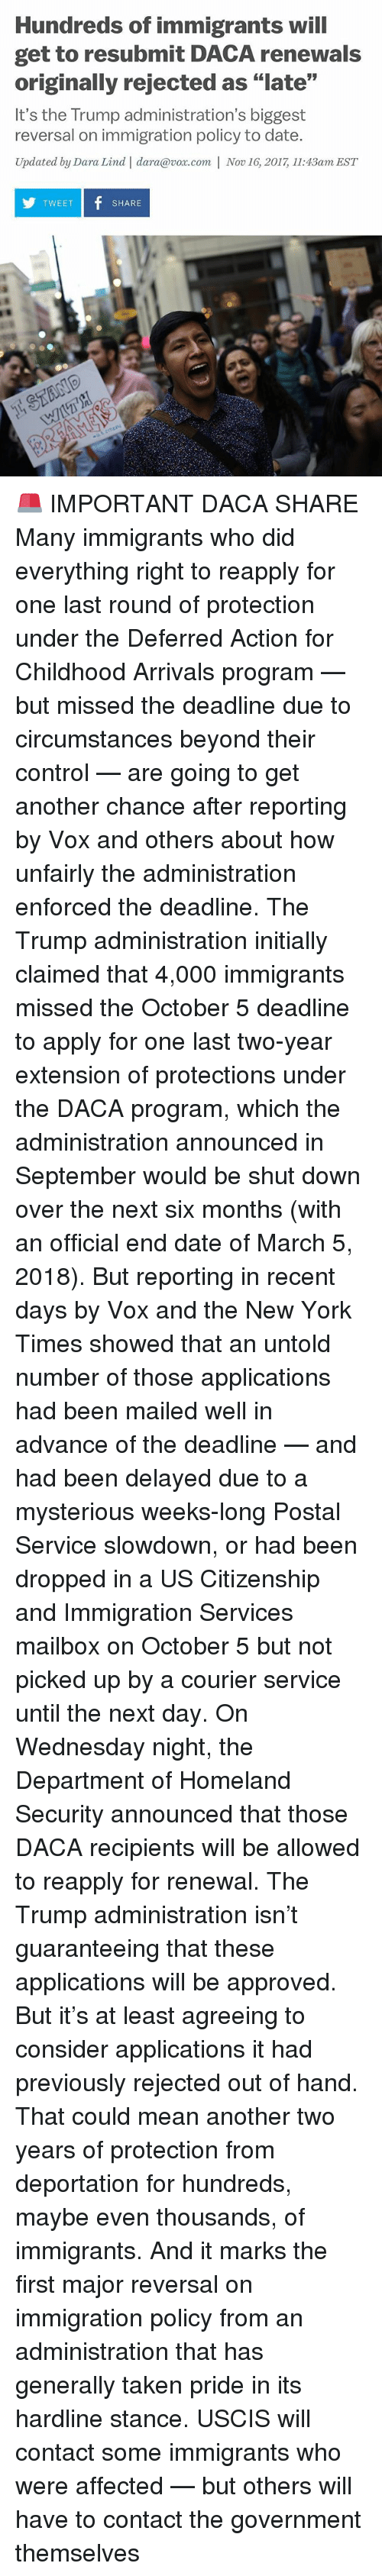 """homeland security: Hundreds of immigrants will  get to resubmit DACA renewals  originally rejected as """"late""""  It's the Trump administration's biggest  reversal on immigration policy to date.  Updated by Dara Lind 